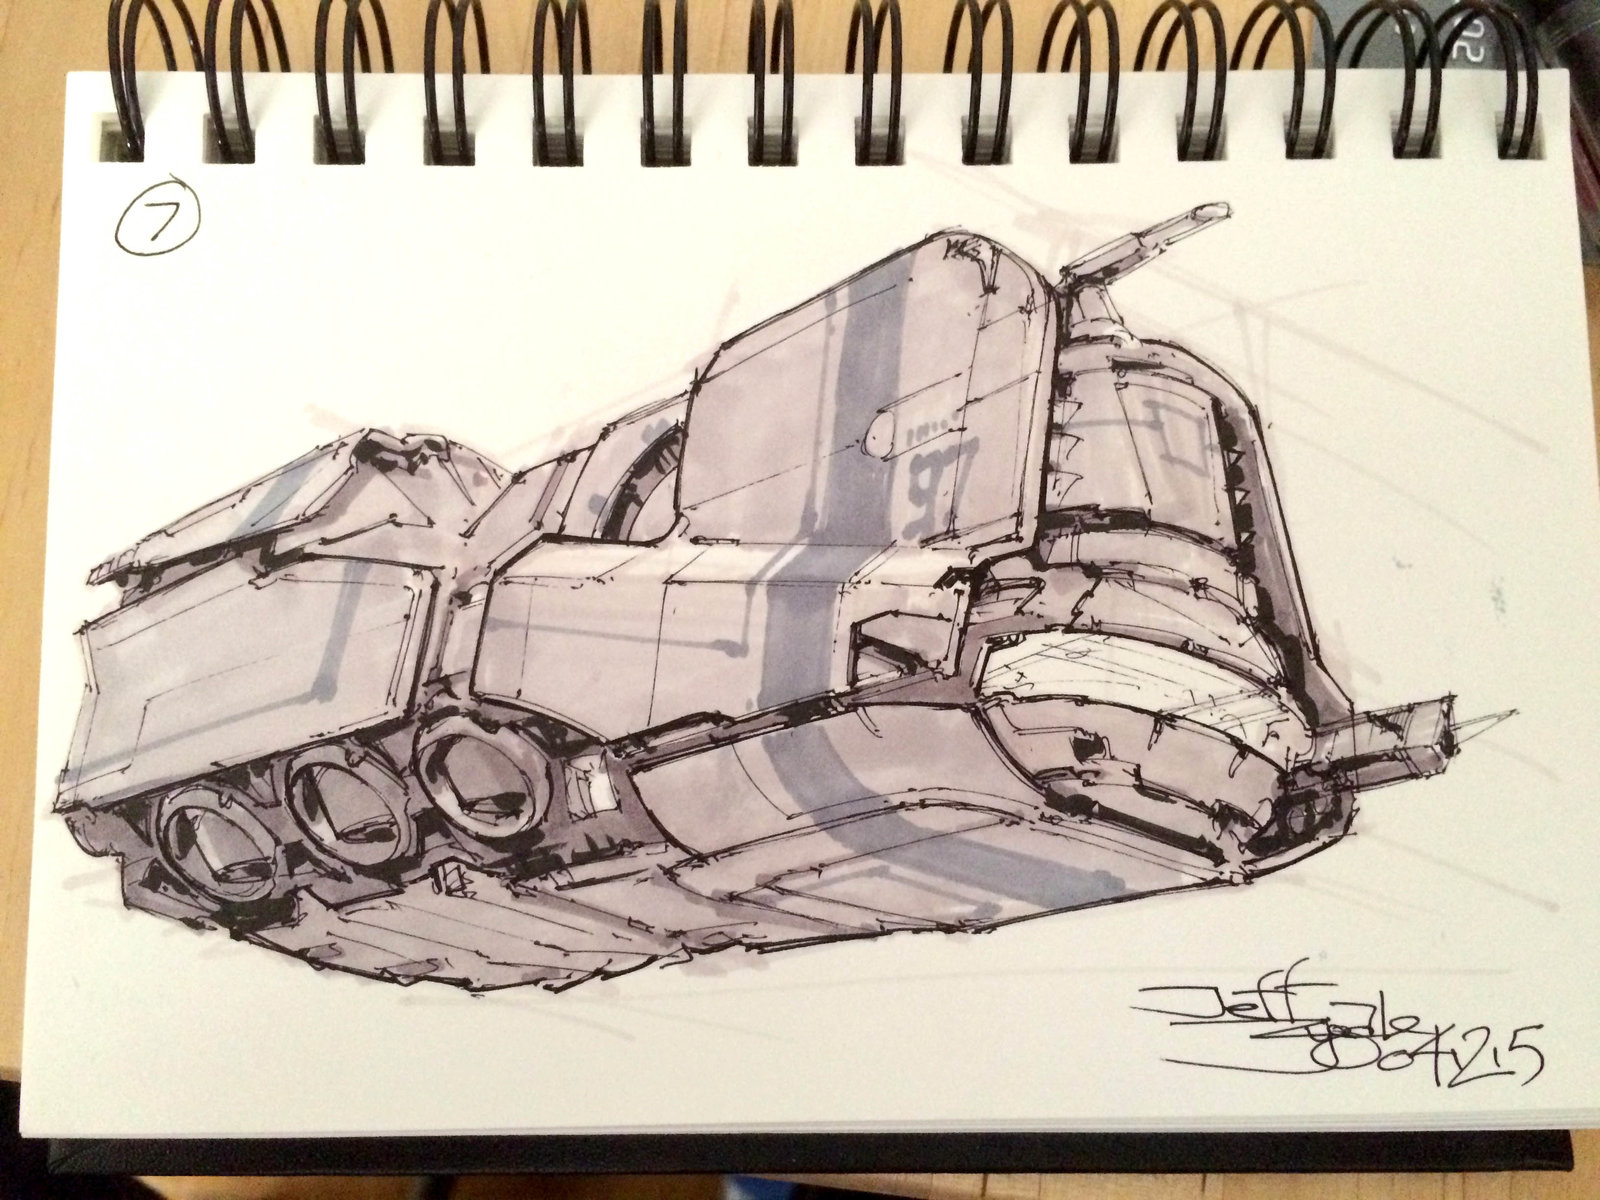 SpaceshipADay 007